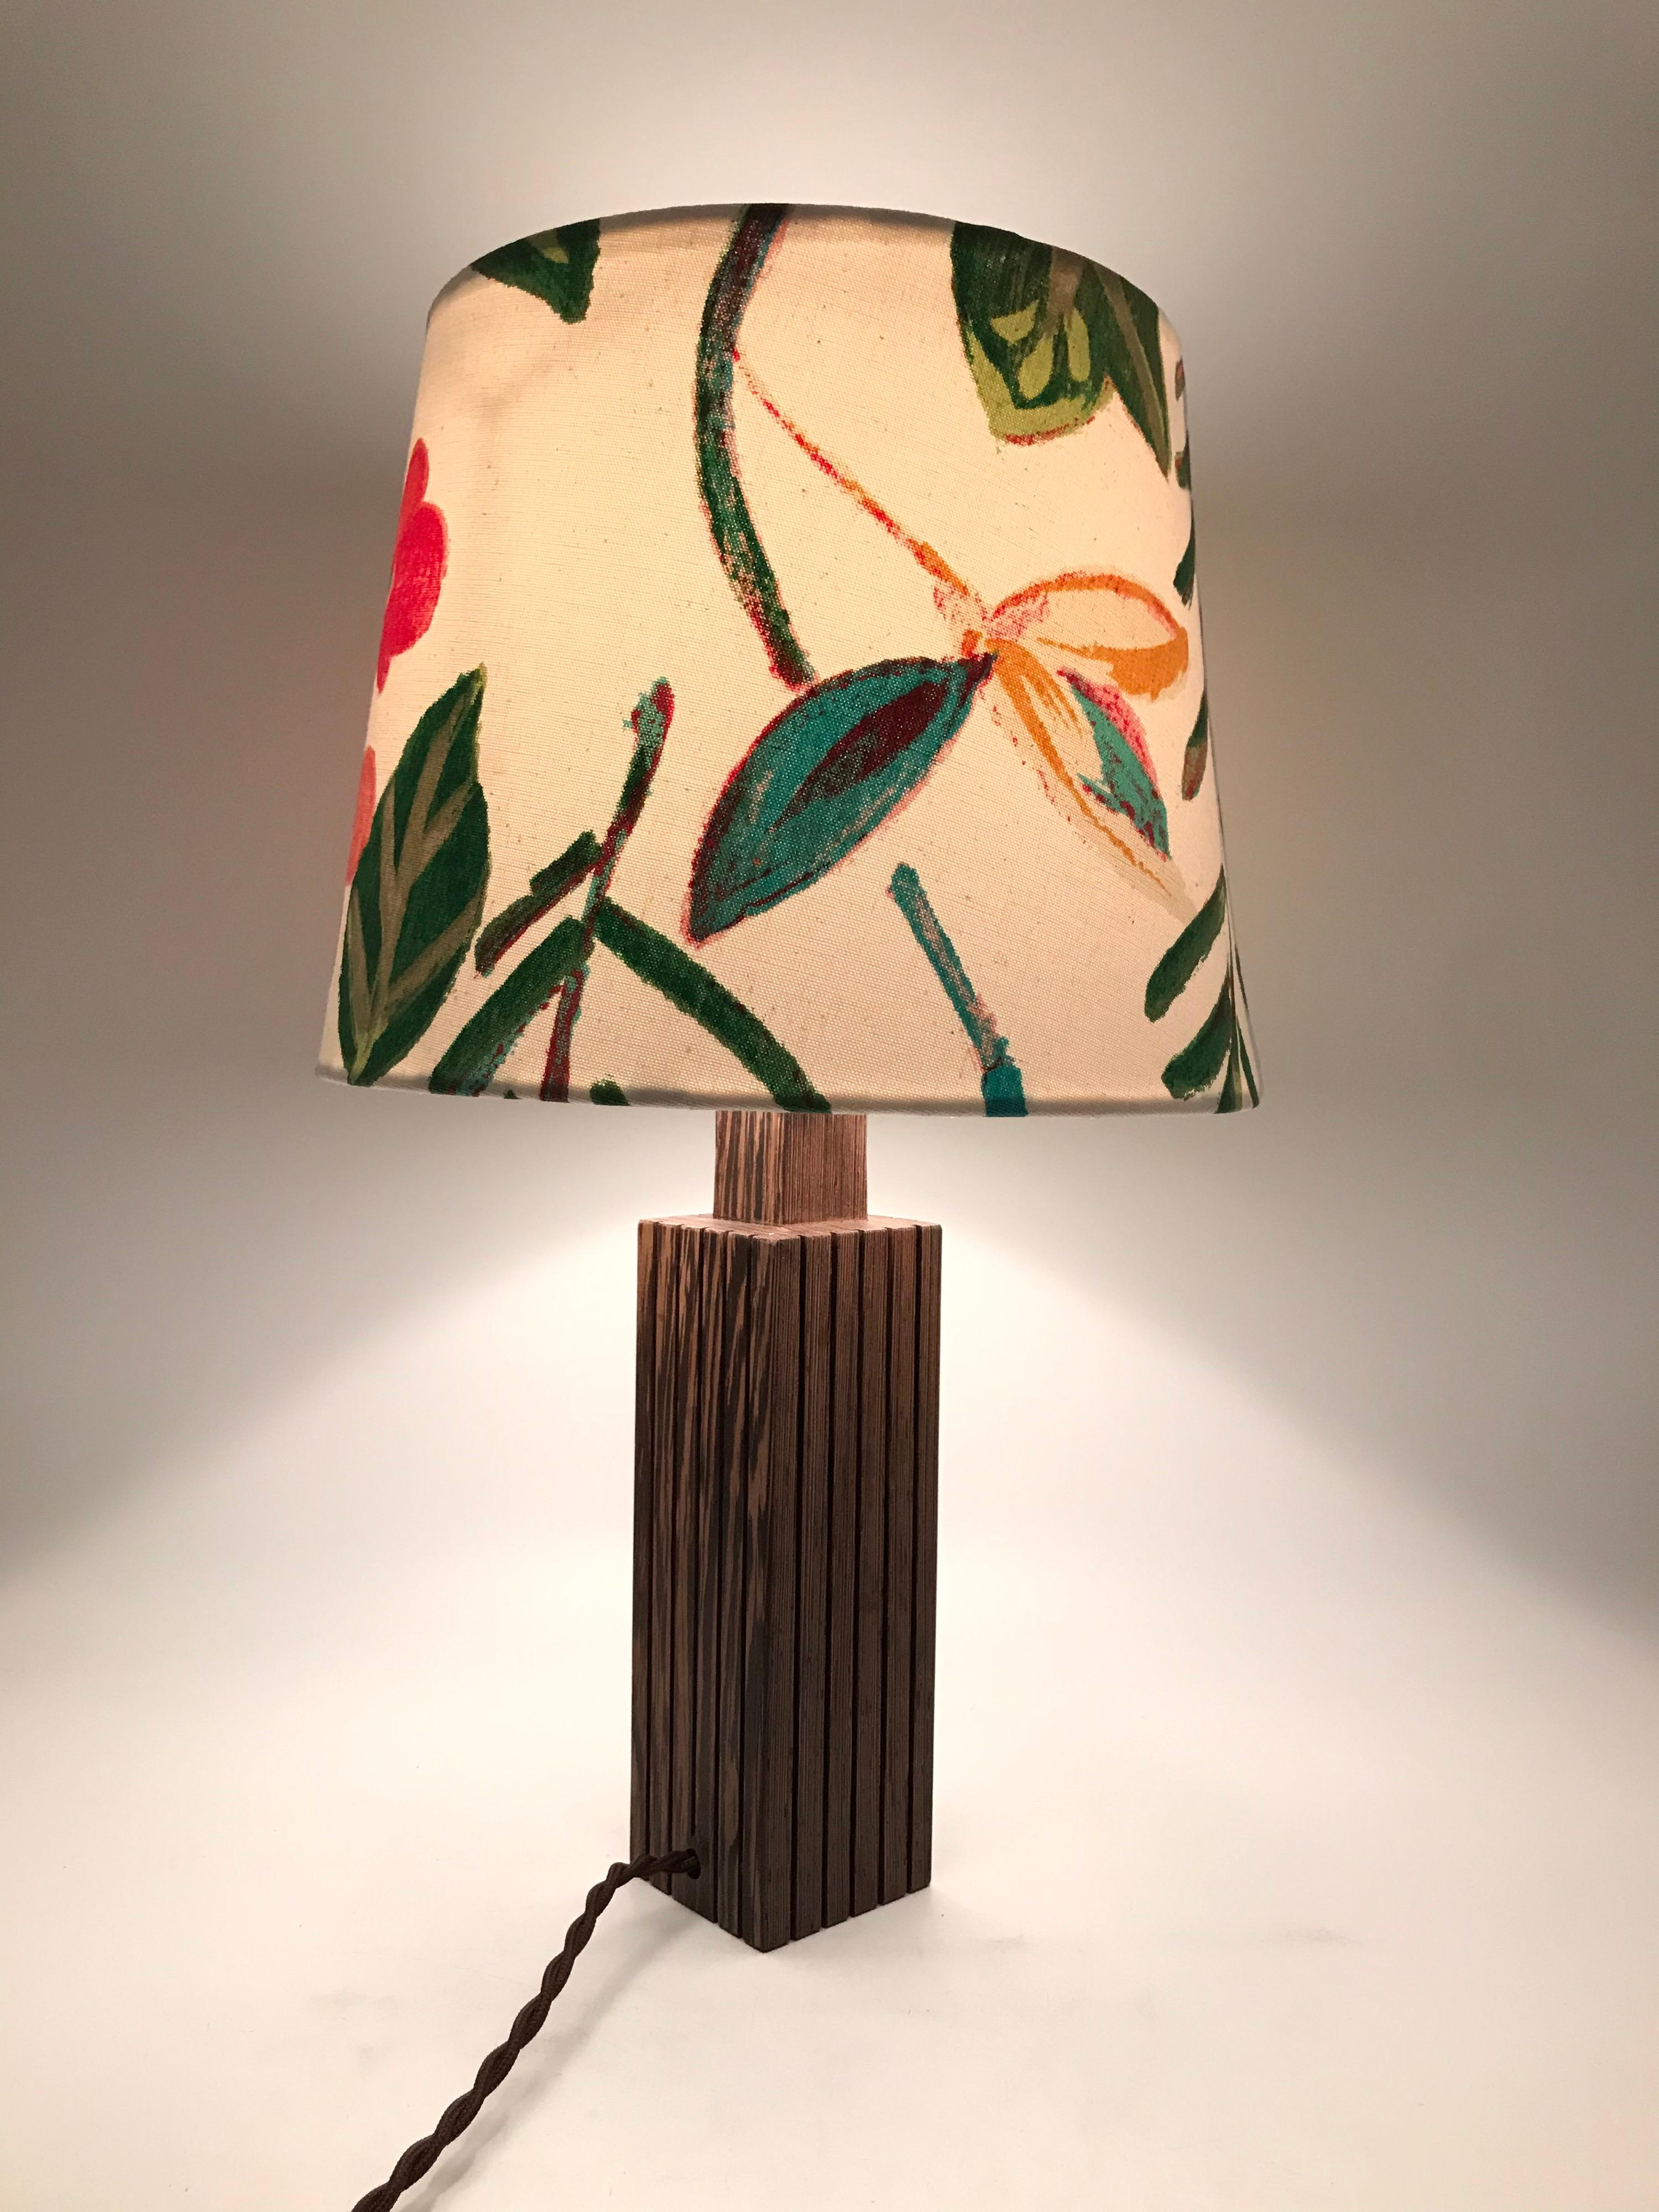 Picture of: Vintage Mid Century Modern Mahogany Table Lamp With An Artbymay Lamp Shade For Sale At 1stdibs